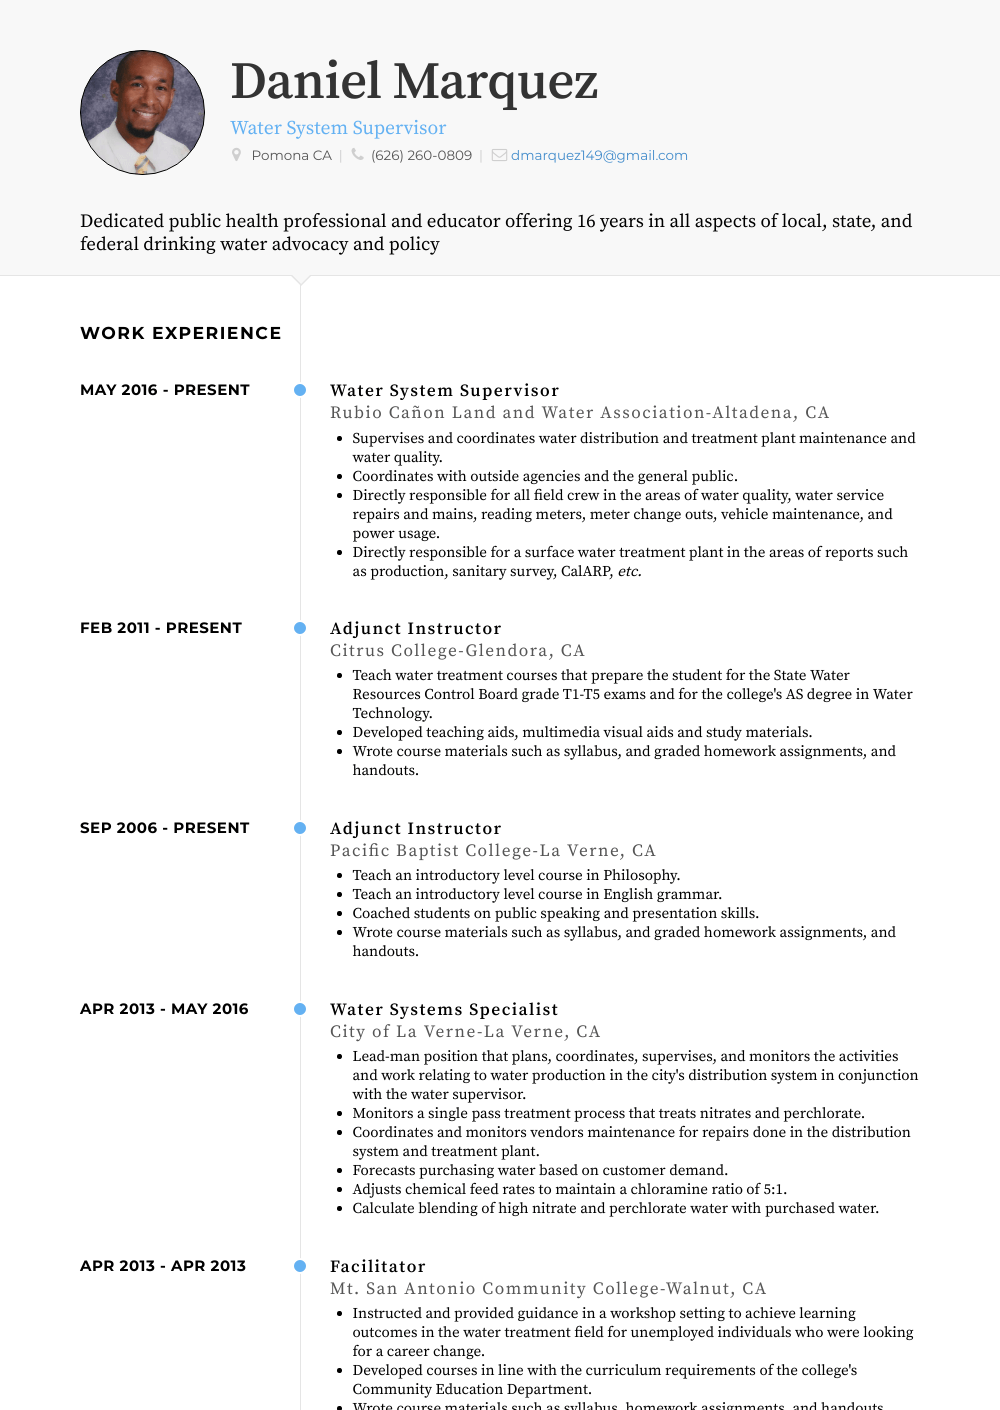 Adjunct Instructor Resume Sample